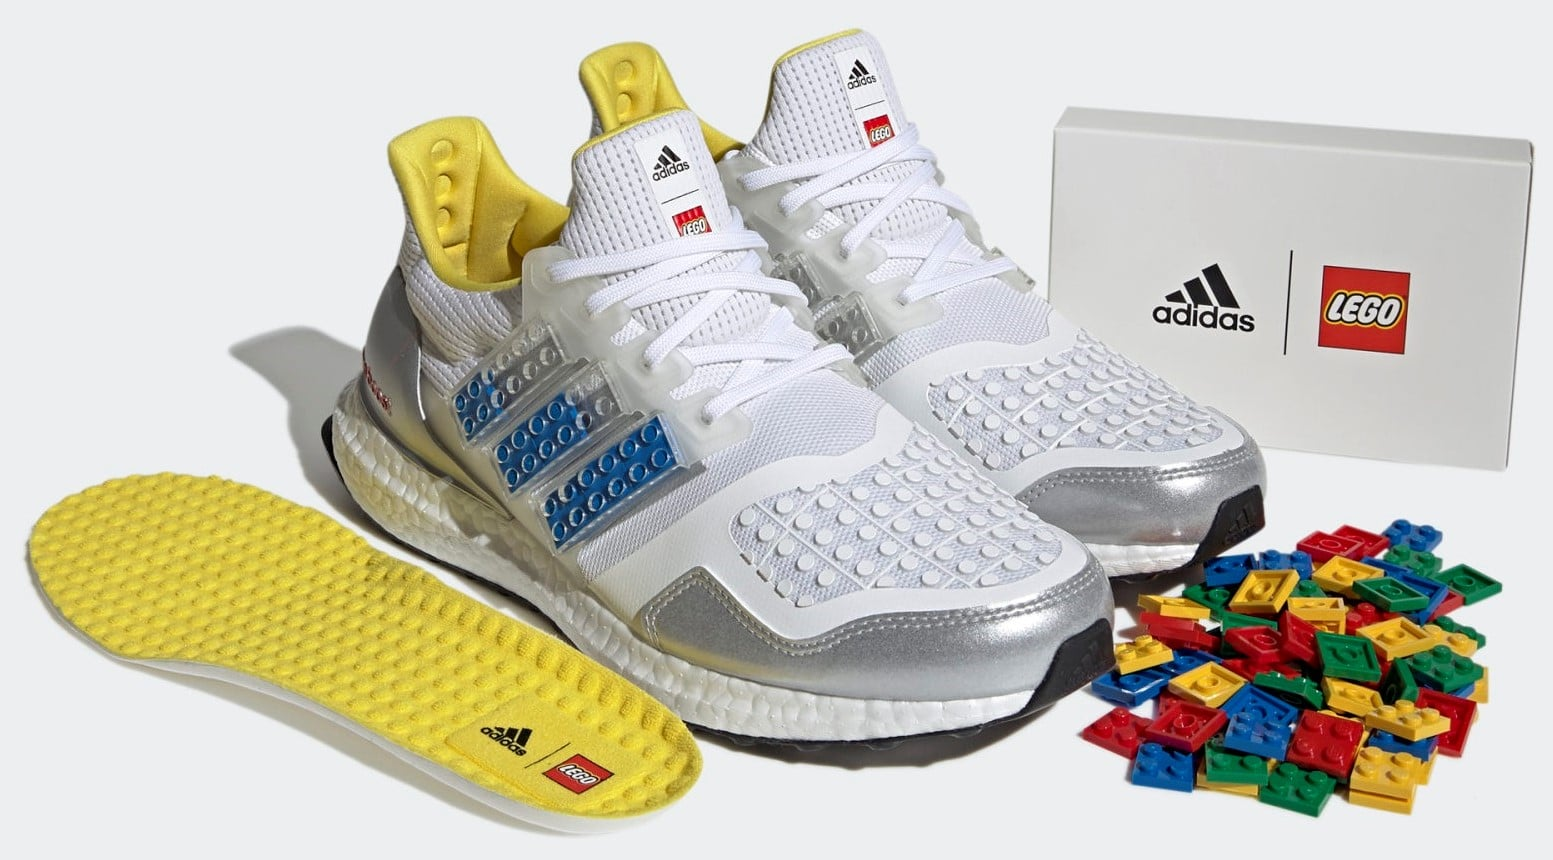 Adidas' new Ultraboost DNA sneaker is customizable with real LEGO plates 12